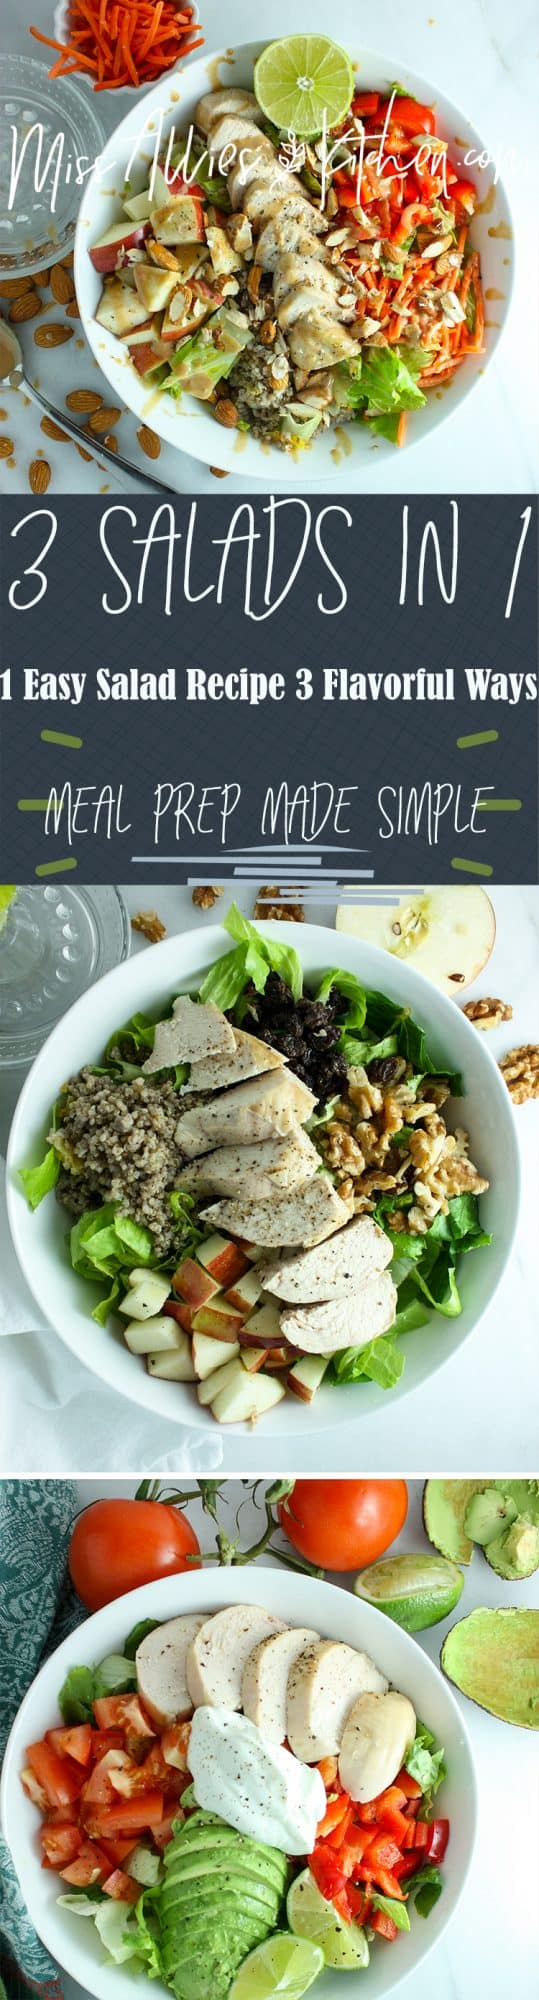 This 1 easy salad 3 flavorful ways makes having a healthy lunch easy!